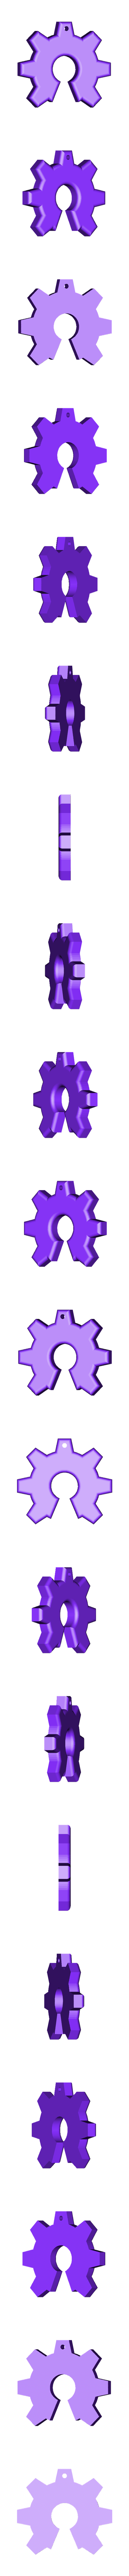 Open_Source_Gear.stl Download free STL file Open Source Gear keychain • 3D print template, Desktop_Makes